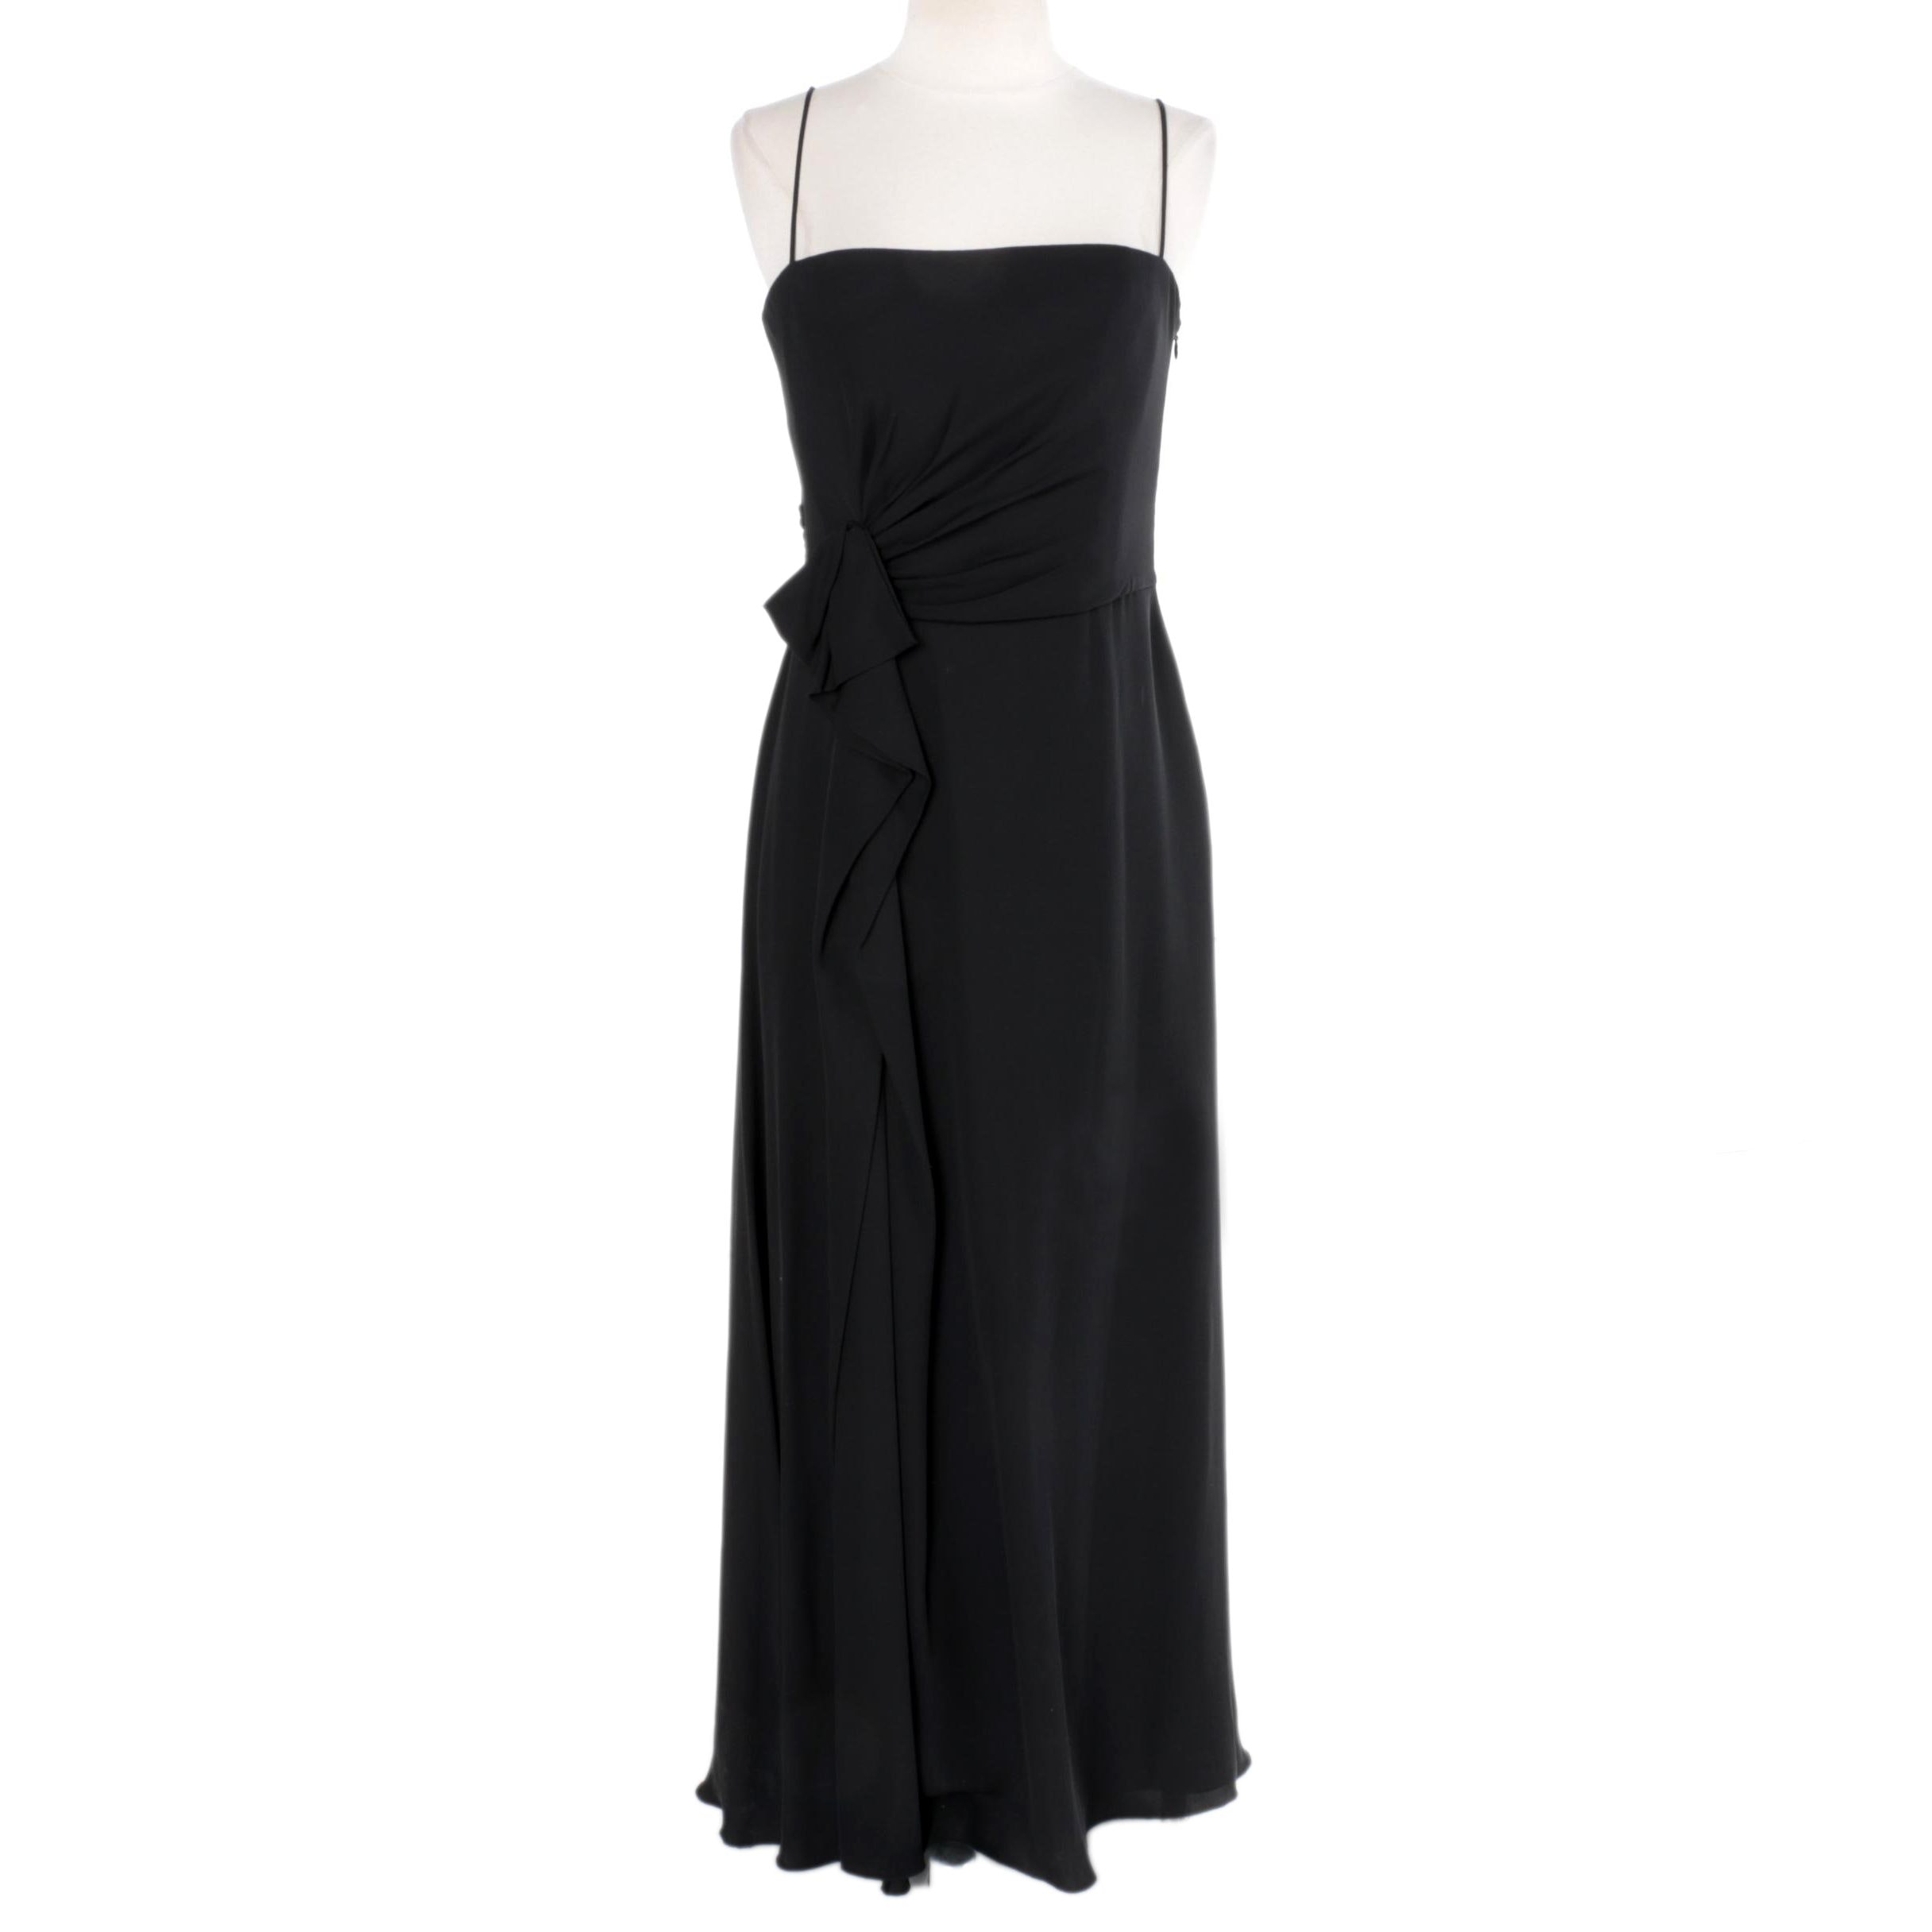 Armani Collezioni Black Sleeveless Dress